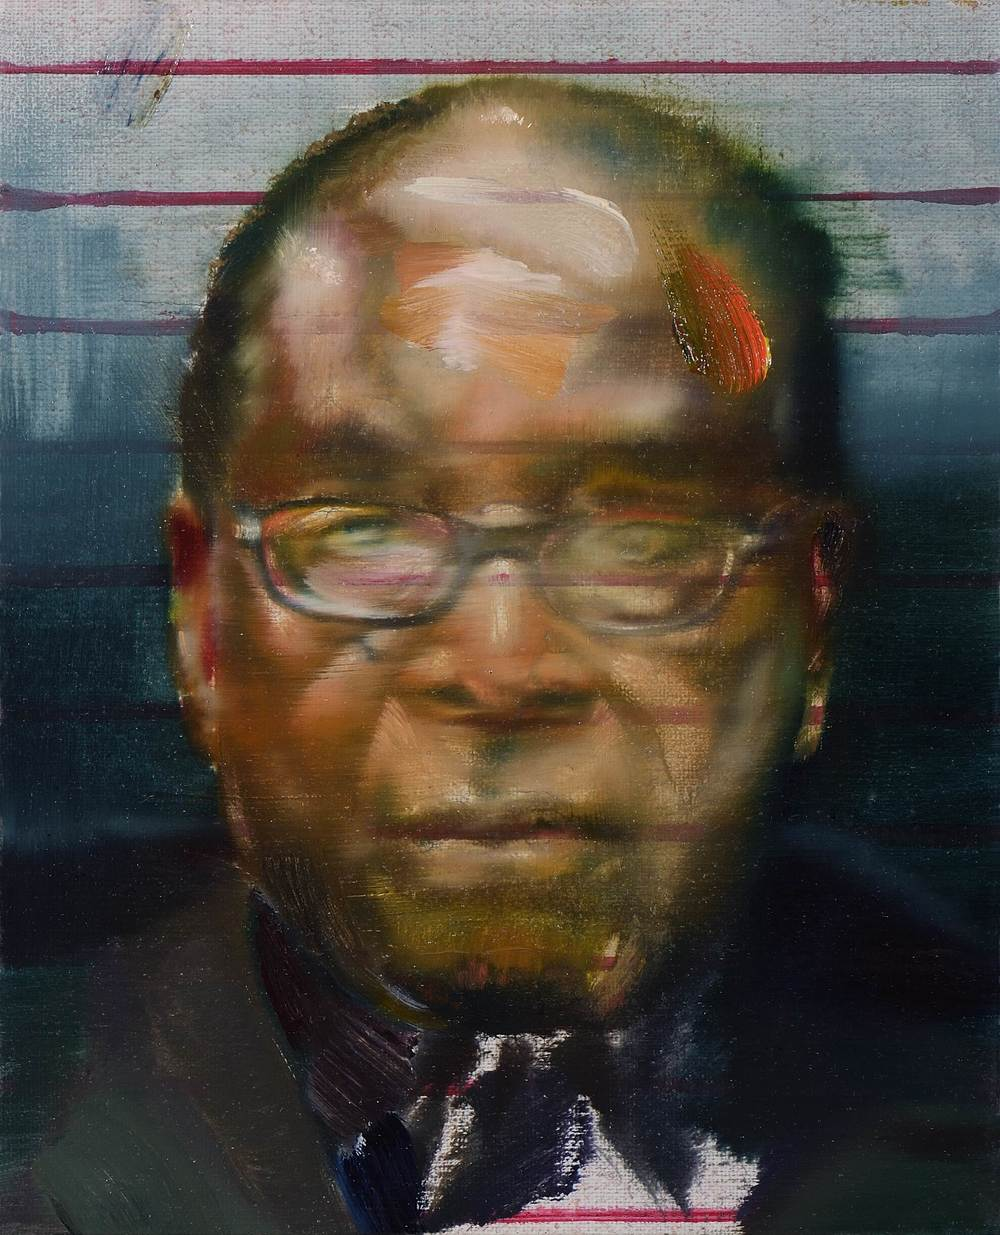 Petit Mugabe 4 , 2012, oil on canvas, 27 x 27cm. Private collection, France